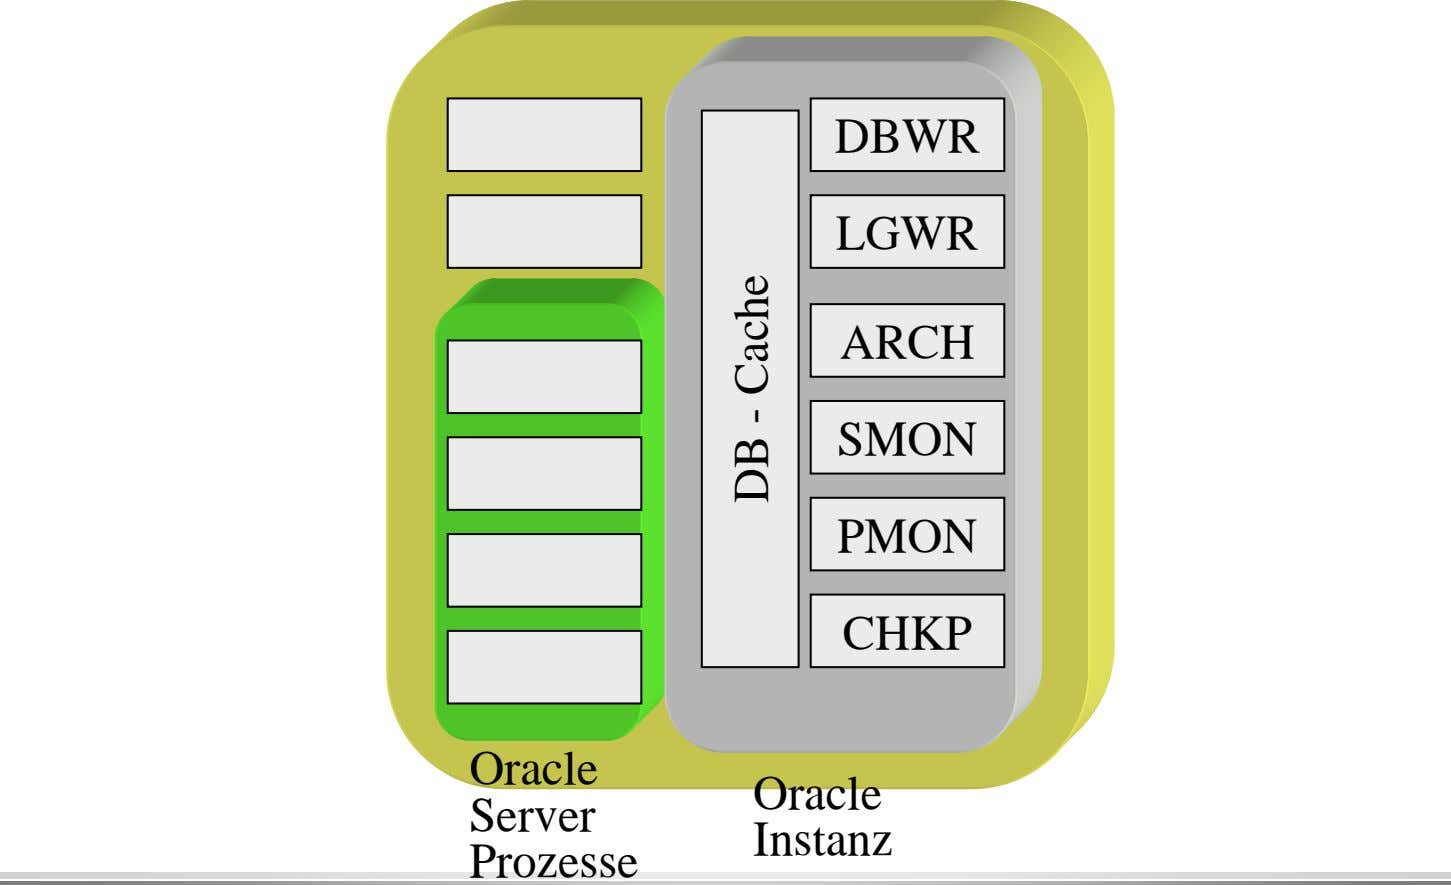 DBWR LGWR ARCH SMON PMON CHKP Oracle Oracle Server Instanz Prozesse DB - Cache